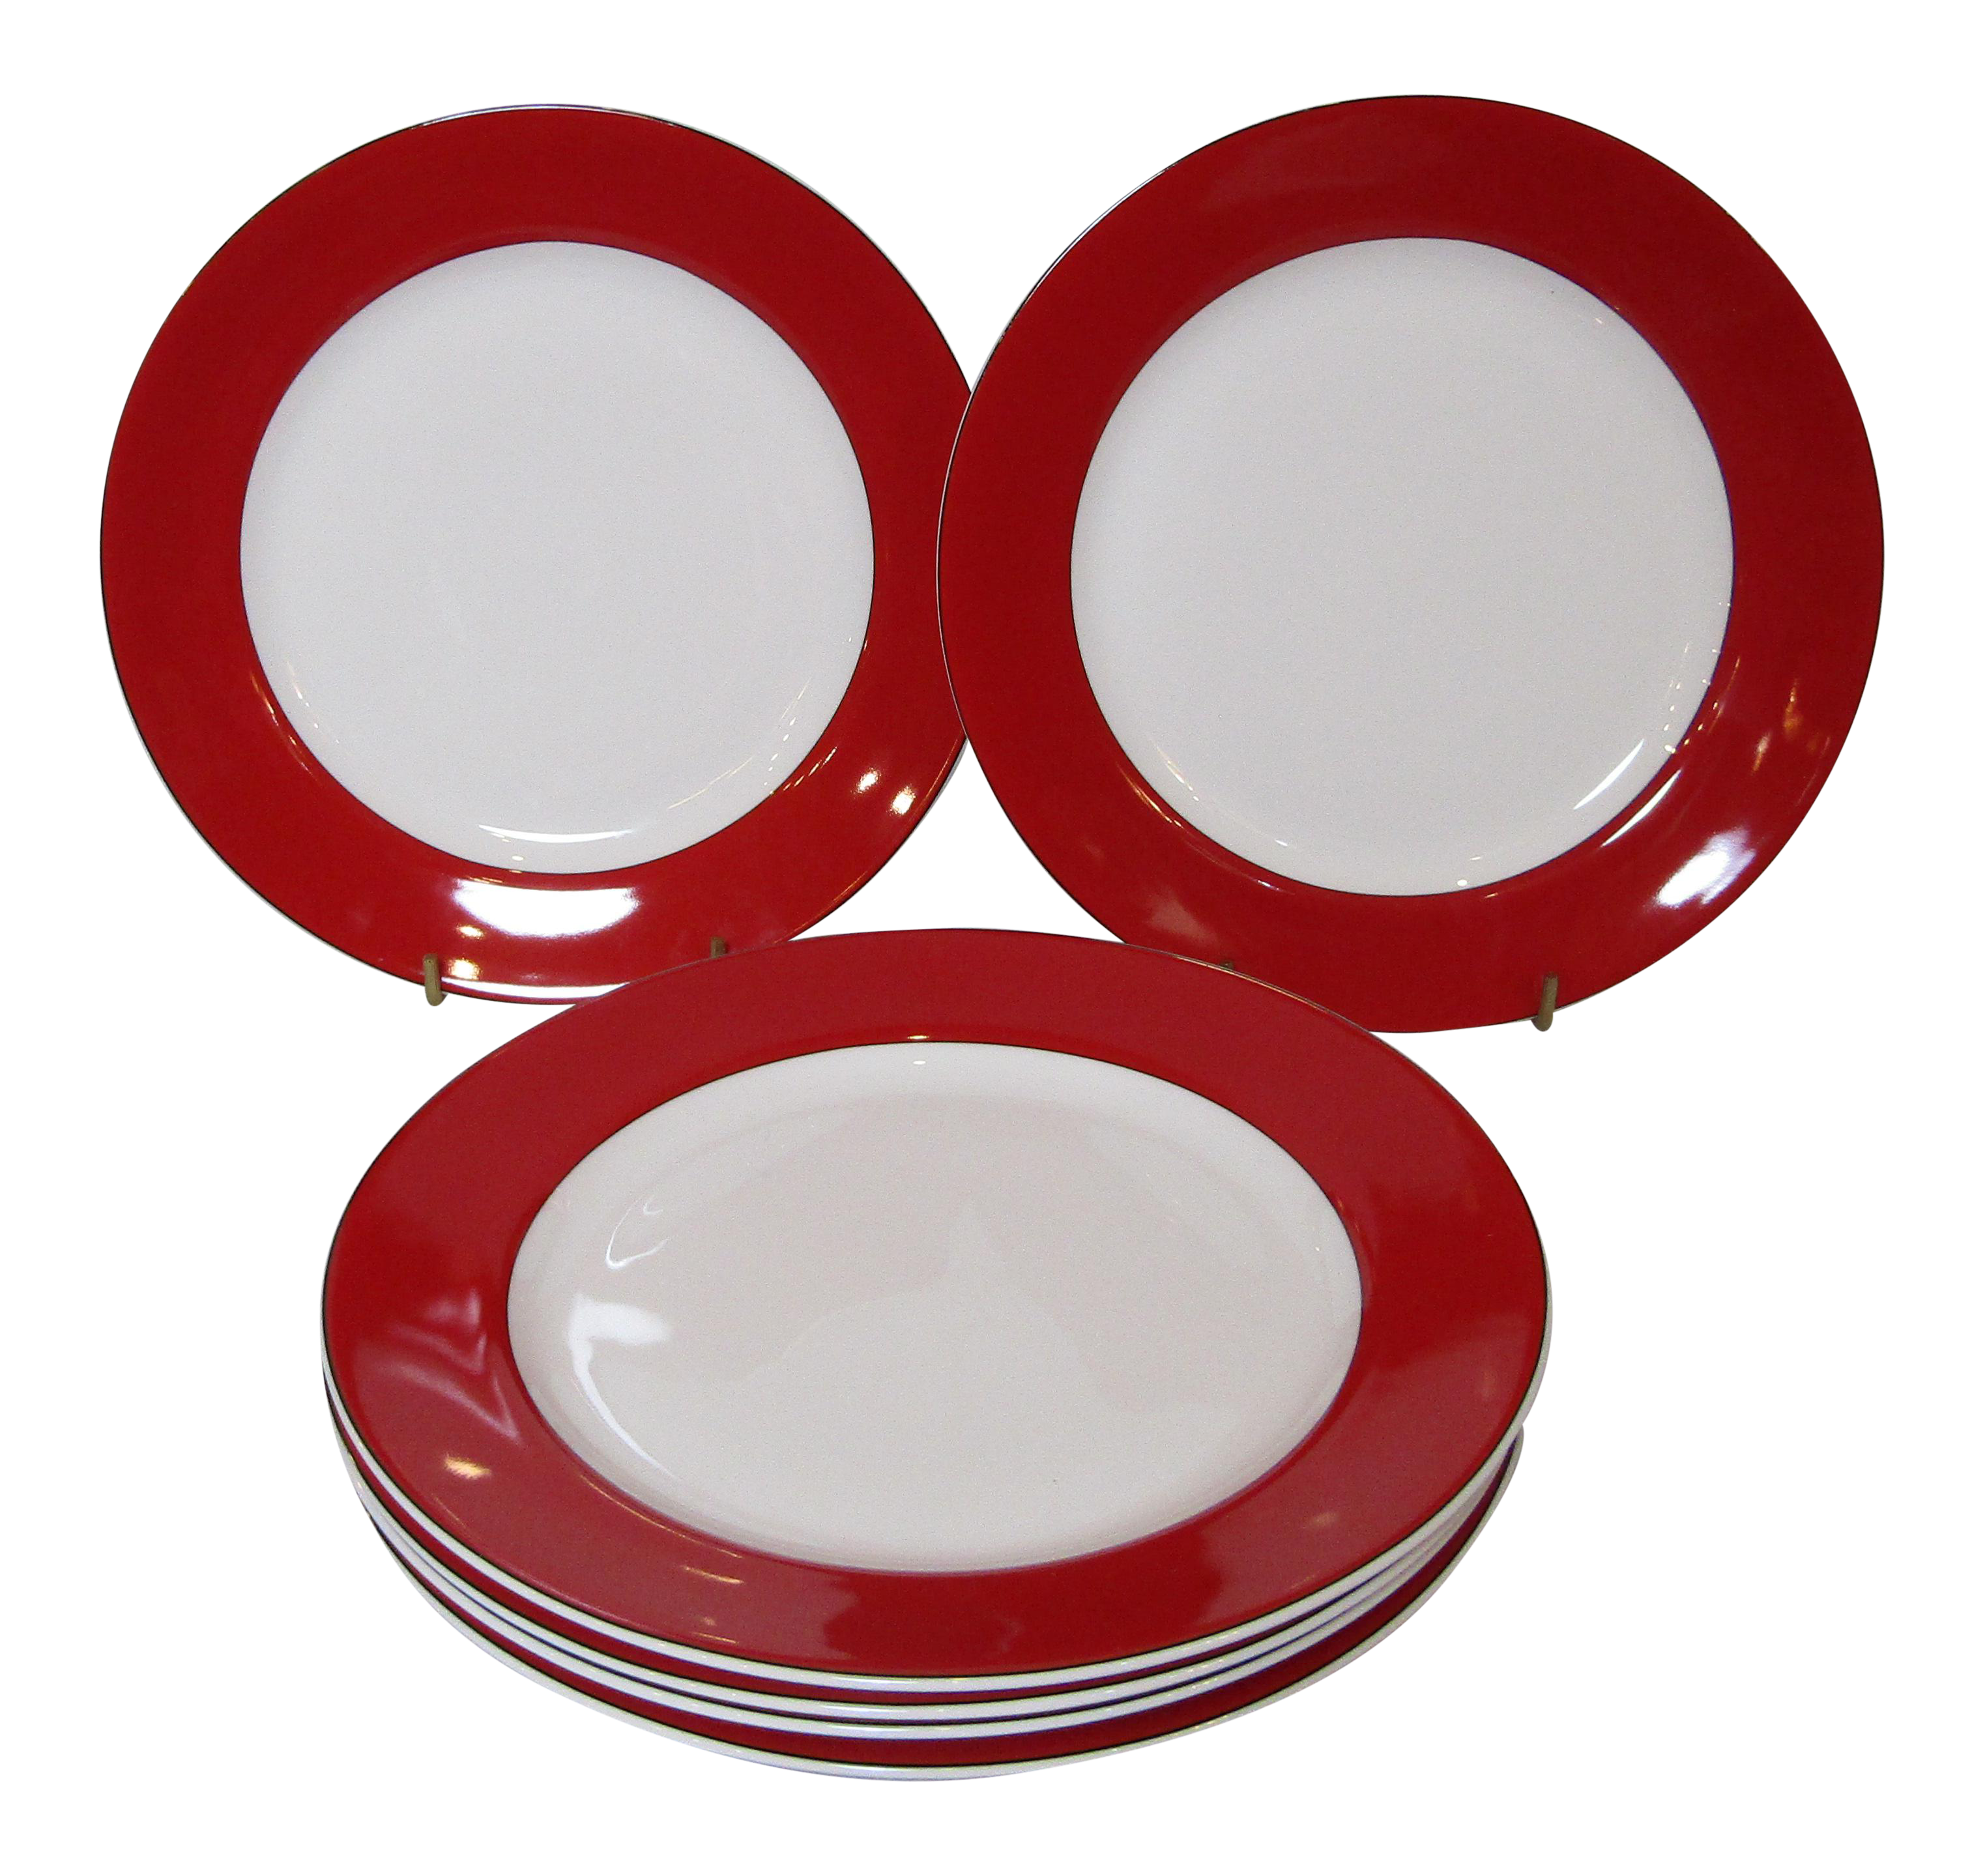 Kate Spade Lenox Holiday Red Dinner Plates - Set of Six  sc 1 st  Chairish & Kate Spade Lenox Holiday Red Dinner Plates - Set of Six | Chairish